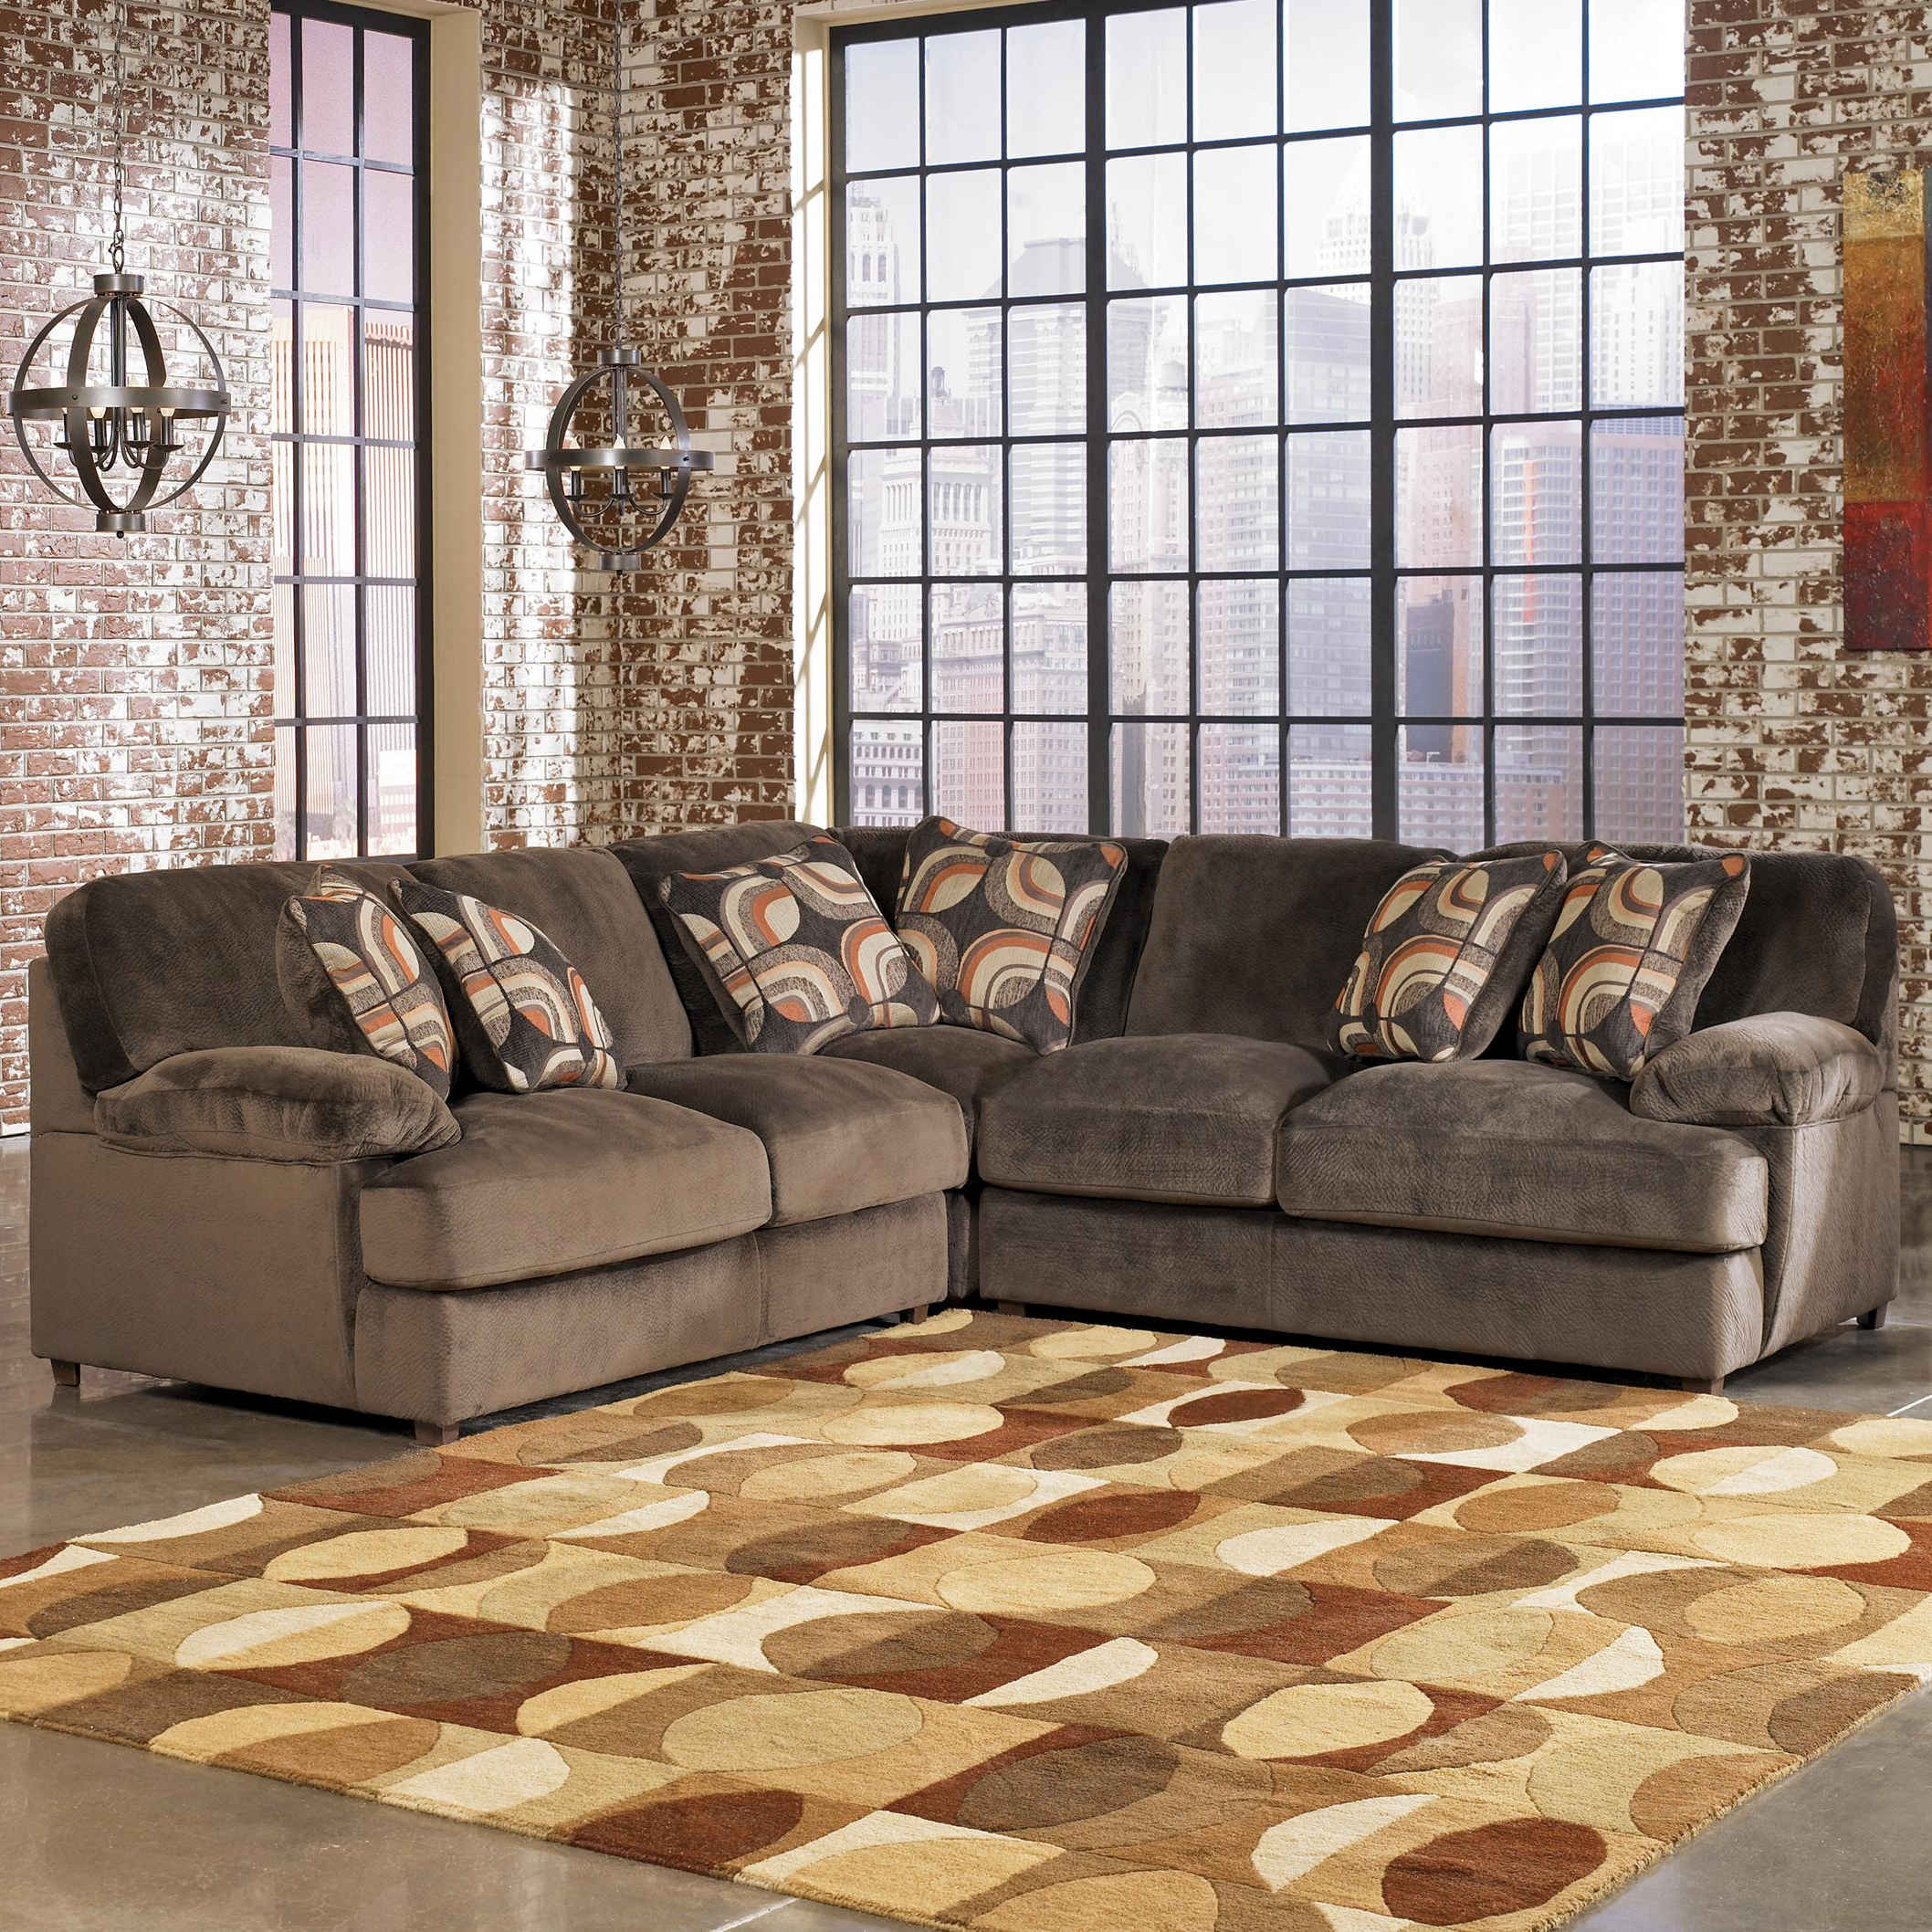 Signature Designashley Truscotti – Cafe Contemporary 3 Piece Pertaining To Most Up To Date Blaine 3 Piece Sectionals (View 15 of 20)